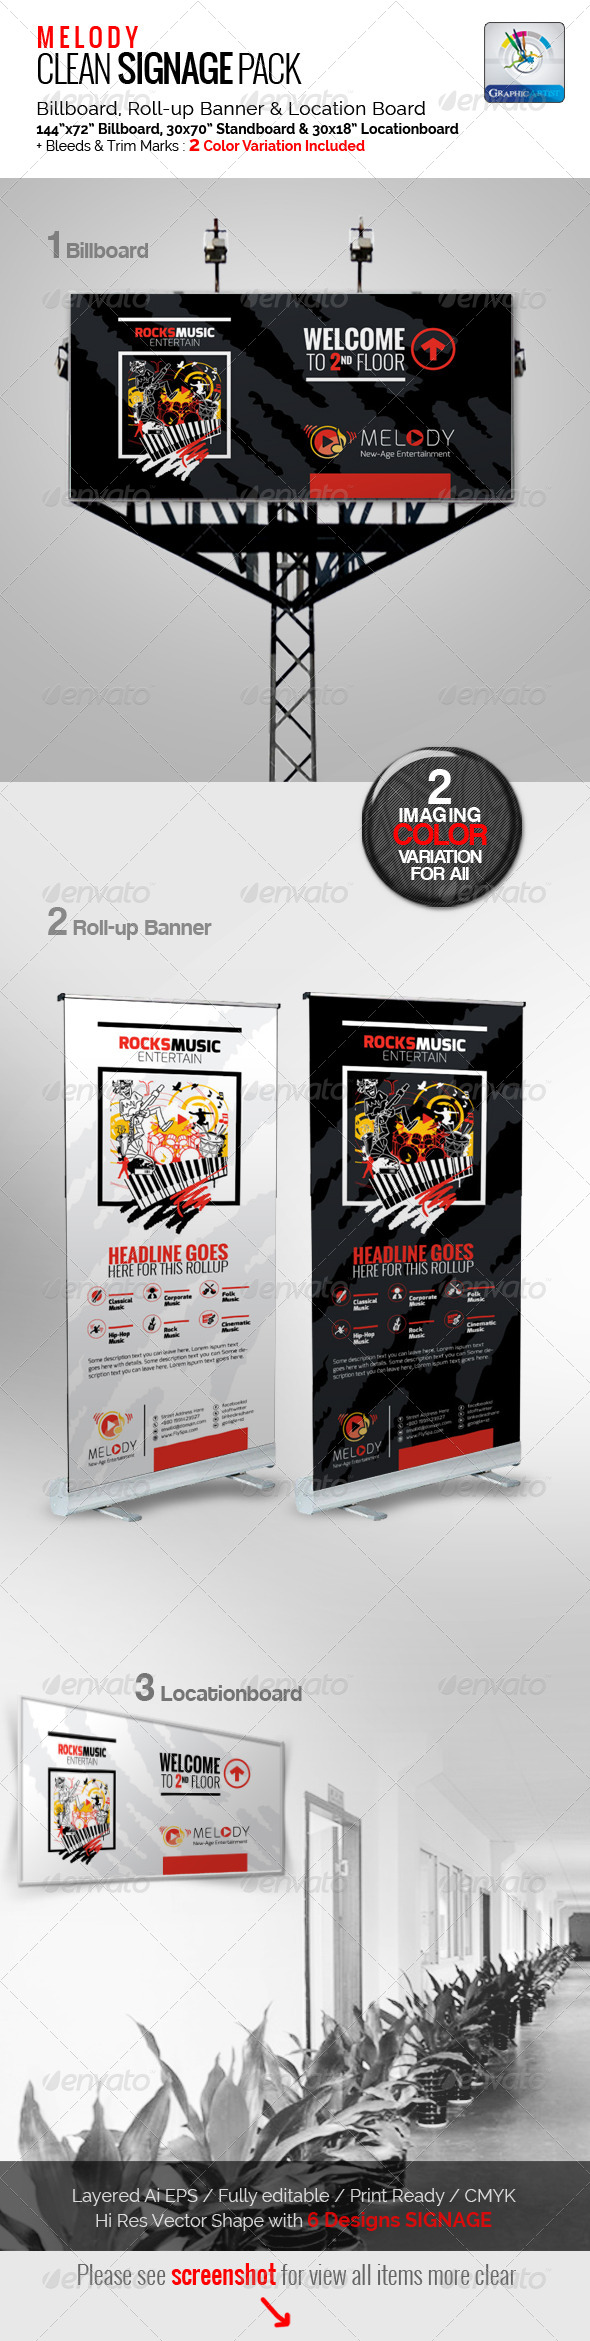 GraphicRiver Melody Clean Signage Pack 5819552